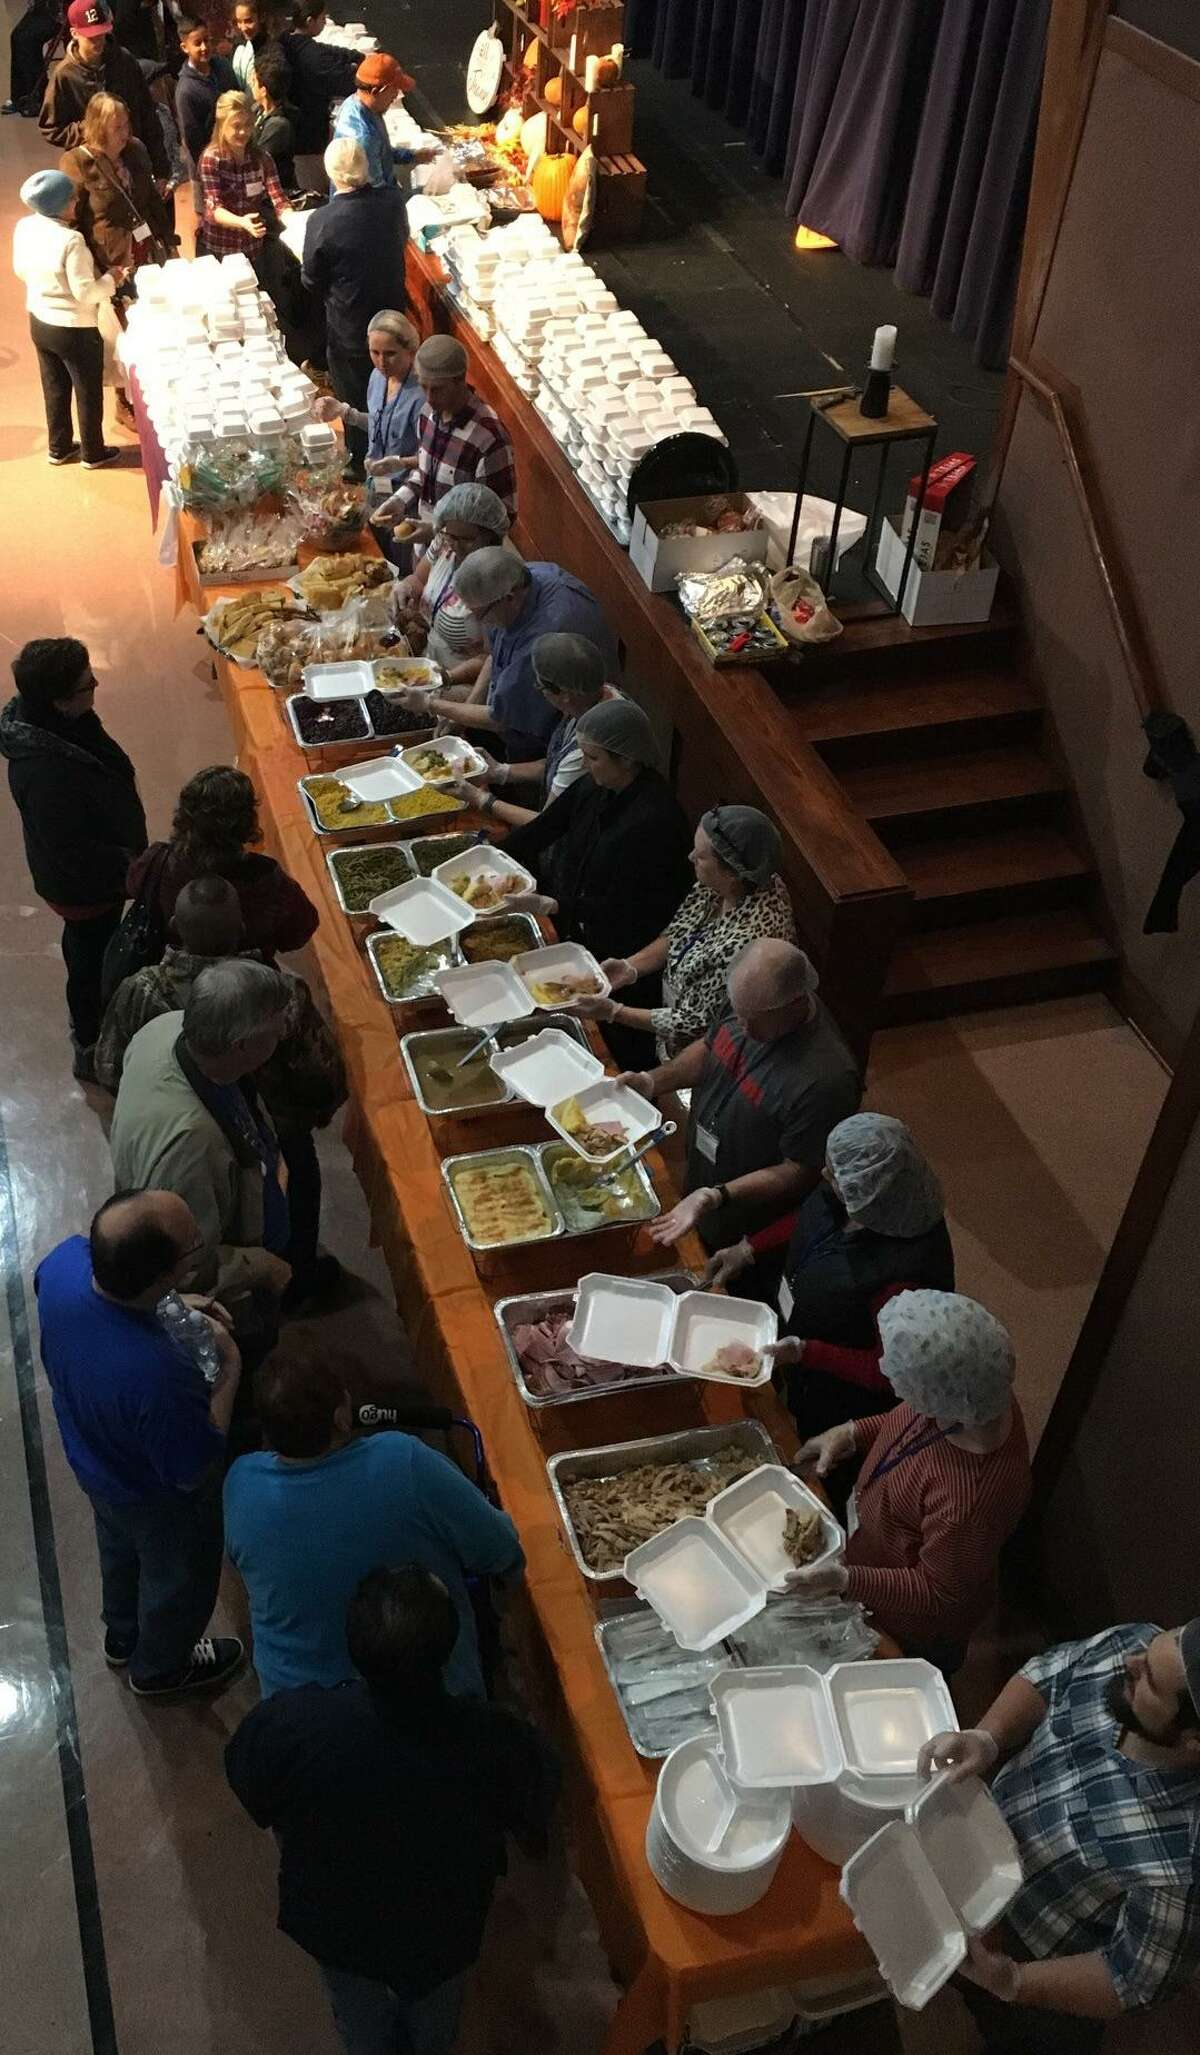 Church volunteers served food from two serving lines on Thanksgiving as part of the eighth annual Katy Thanksgiving Feast. Host church for this year's event was Katy First United Methodist Church.